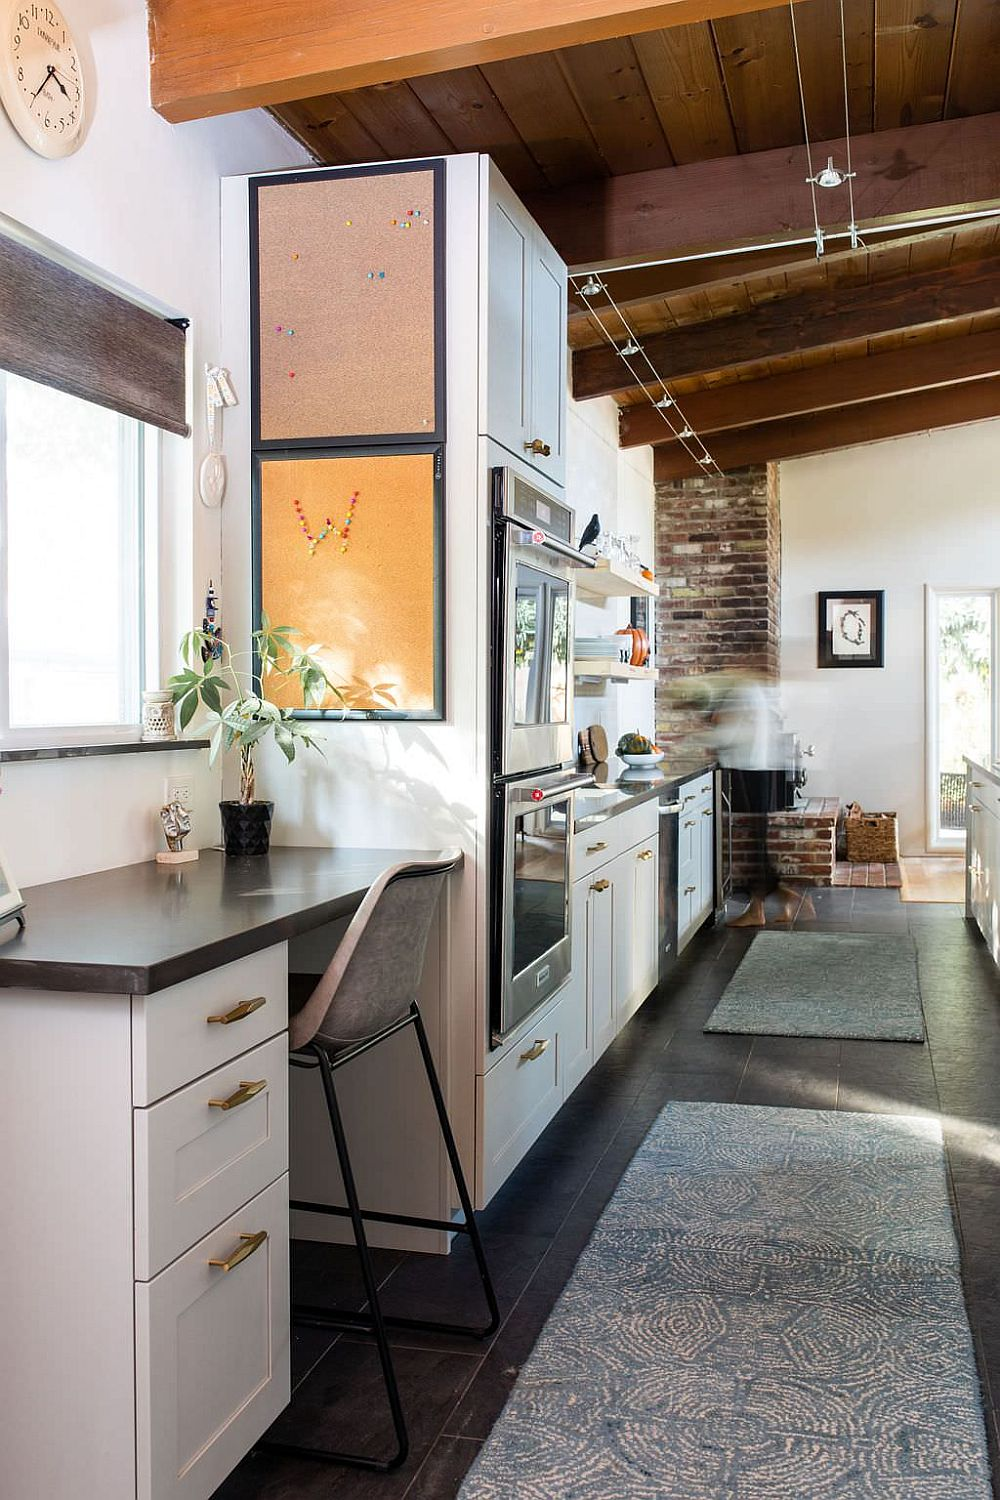 Small niche next to the kitchen transformed into a midcentury modern home workspace